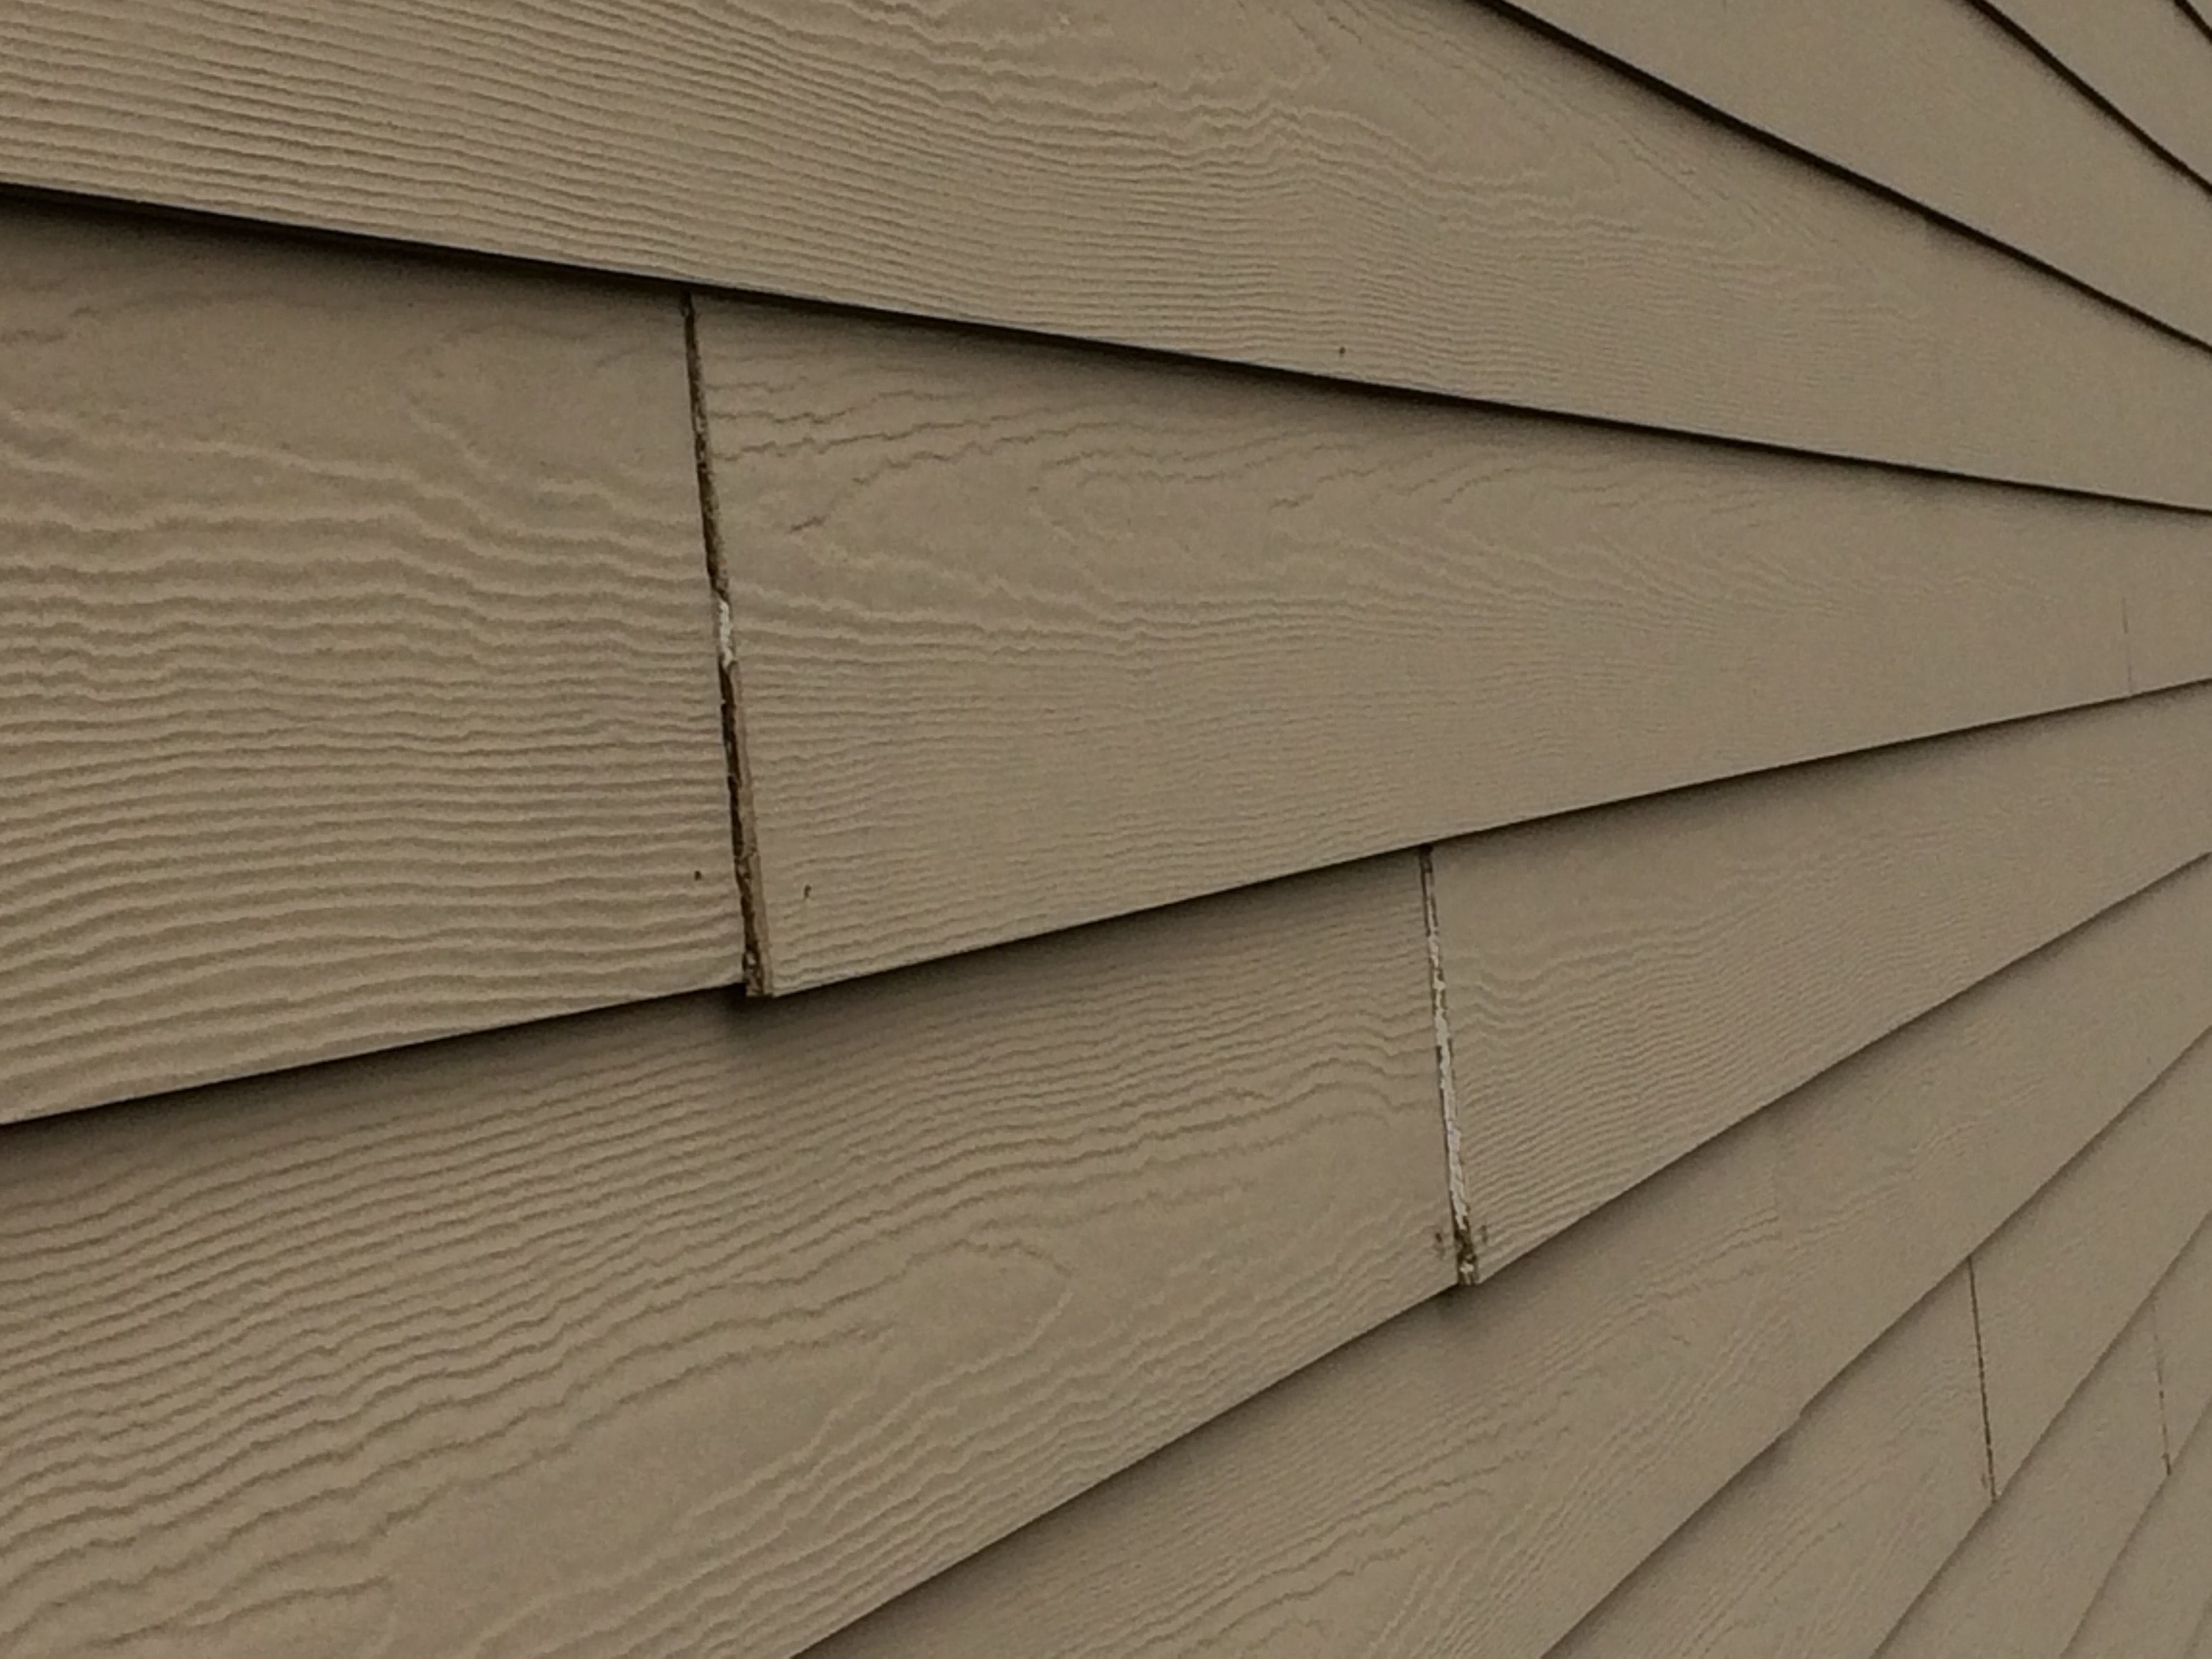 Top 46 Reviews And Complaints About James Hardie Siding